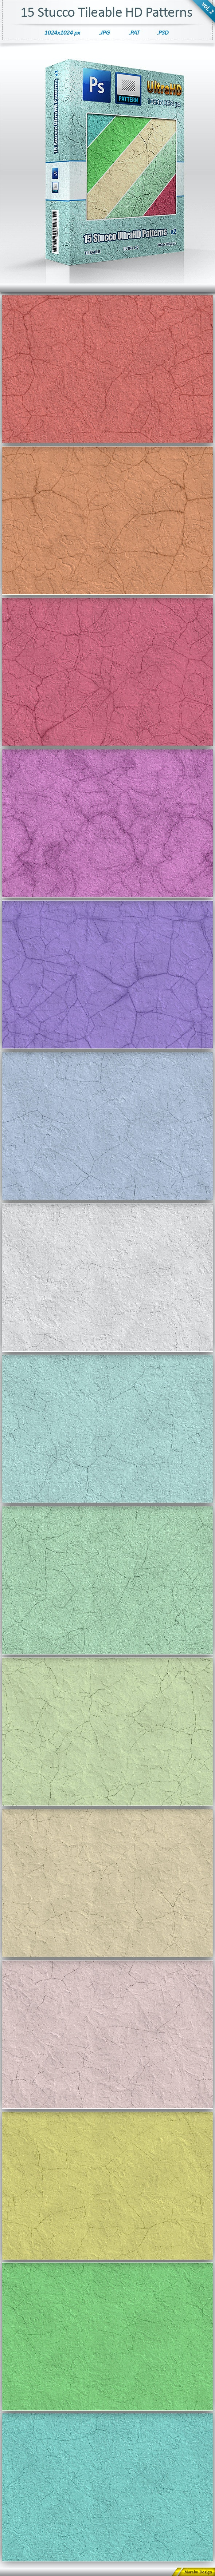 Stucco Tileable Patterns (vol 2) - Textures / Fills / Patterns Photoshop